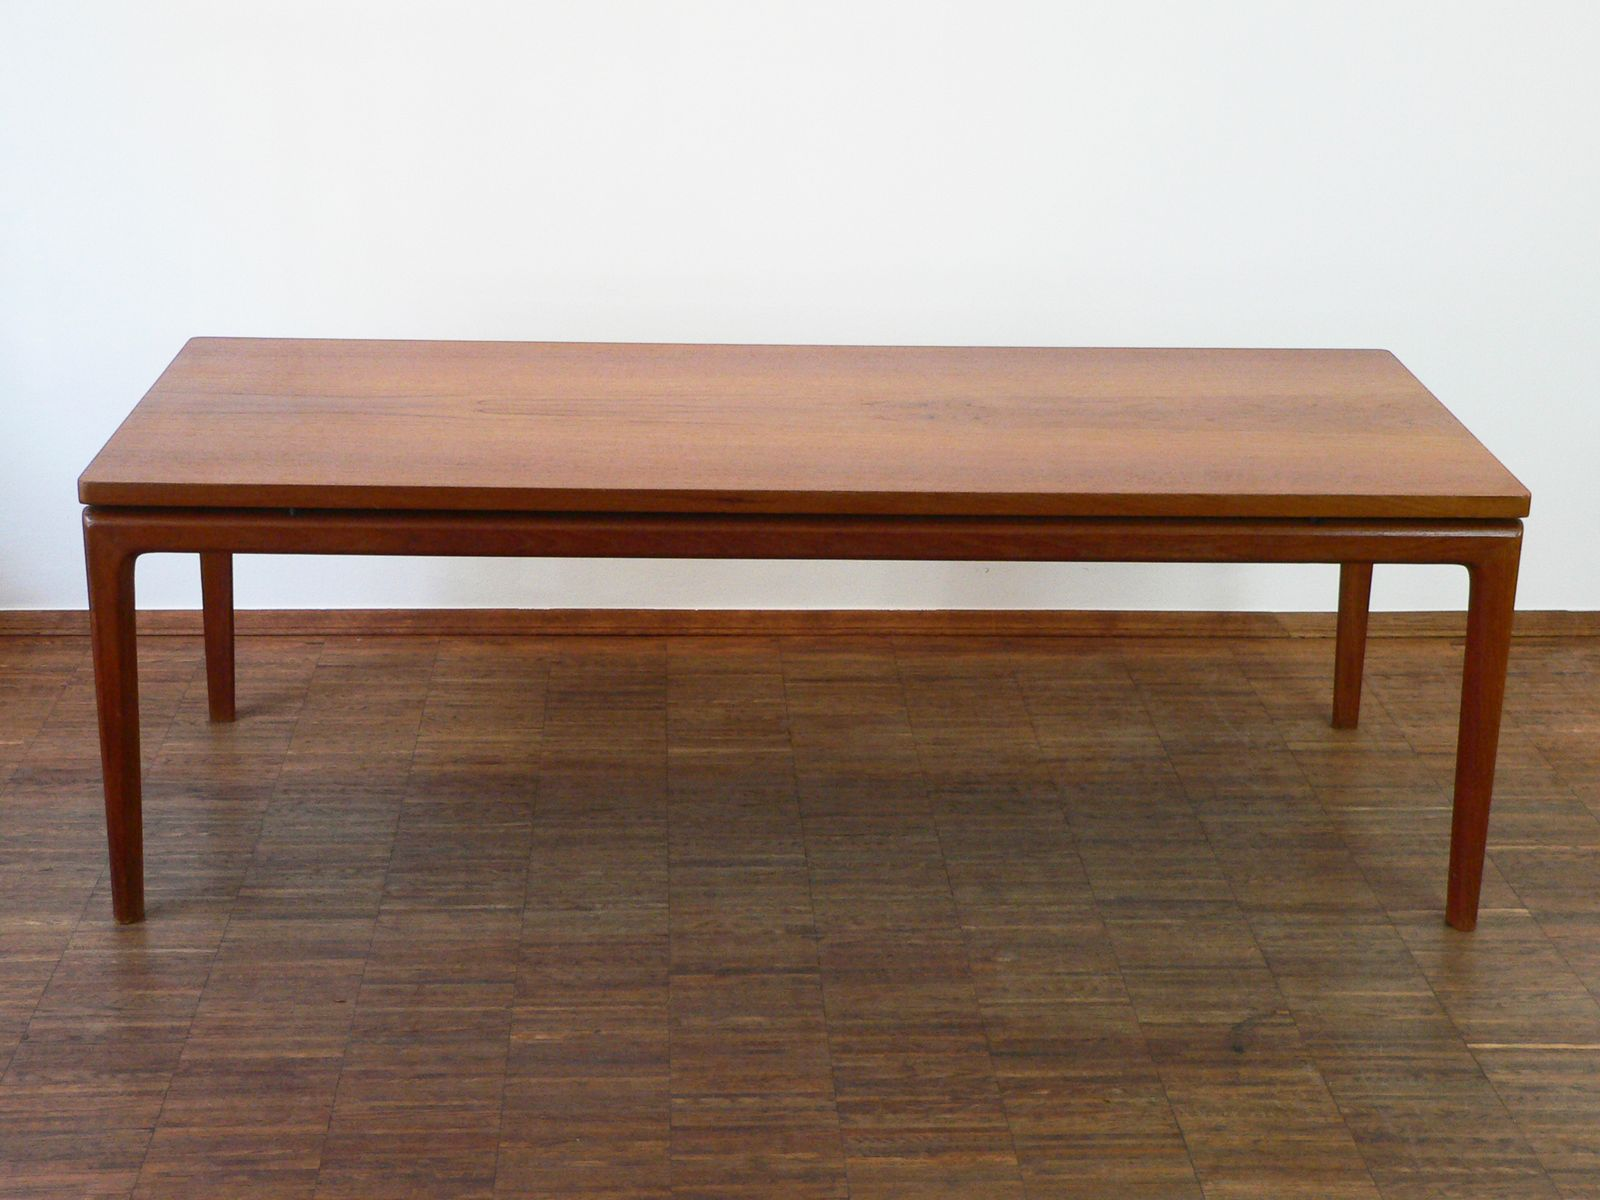 midcentury coffee table by ole wanscher for france  son for sale  - midcentury coffee table by ole wanscher for france  son